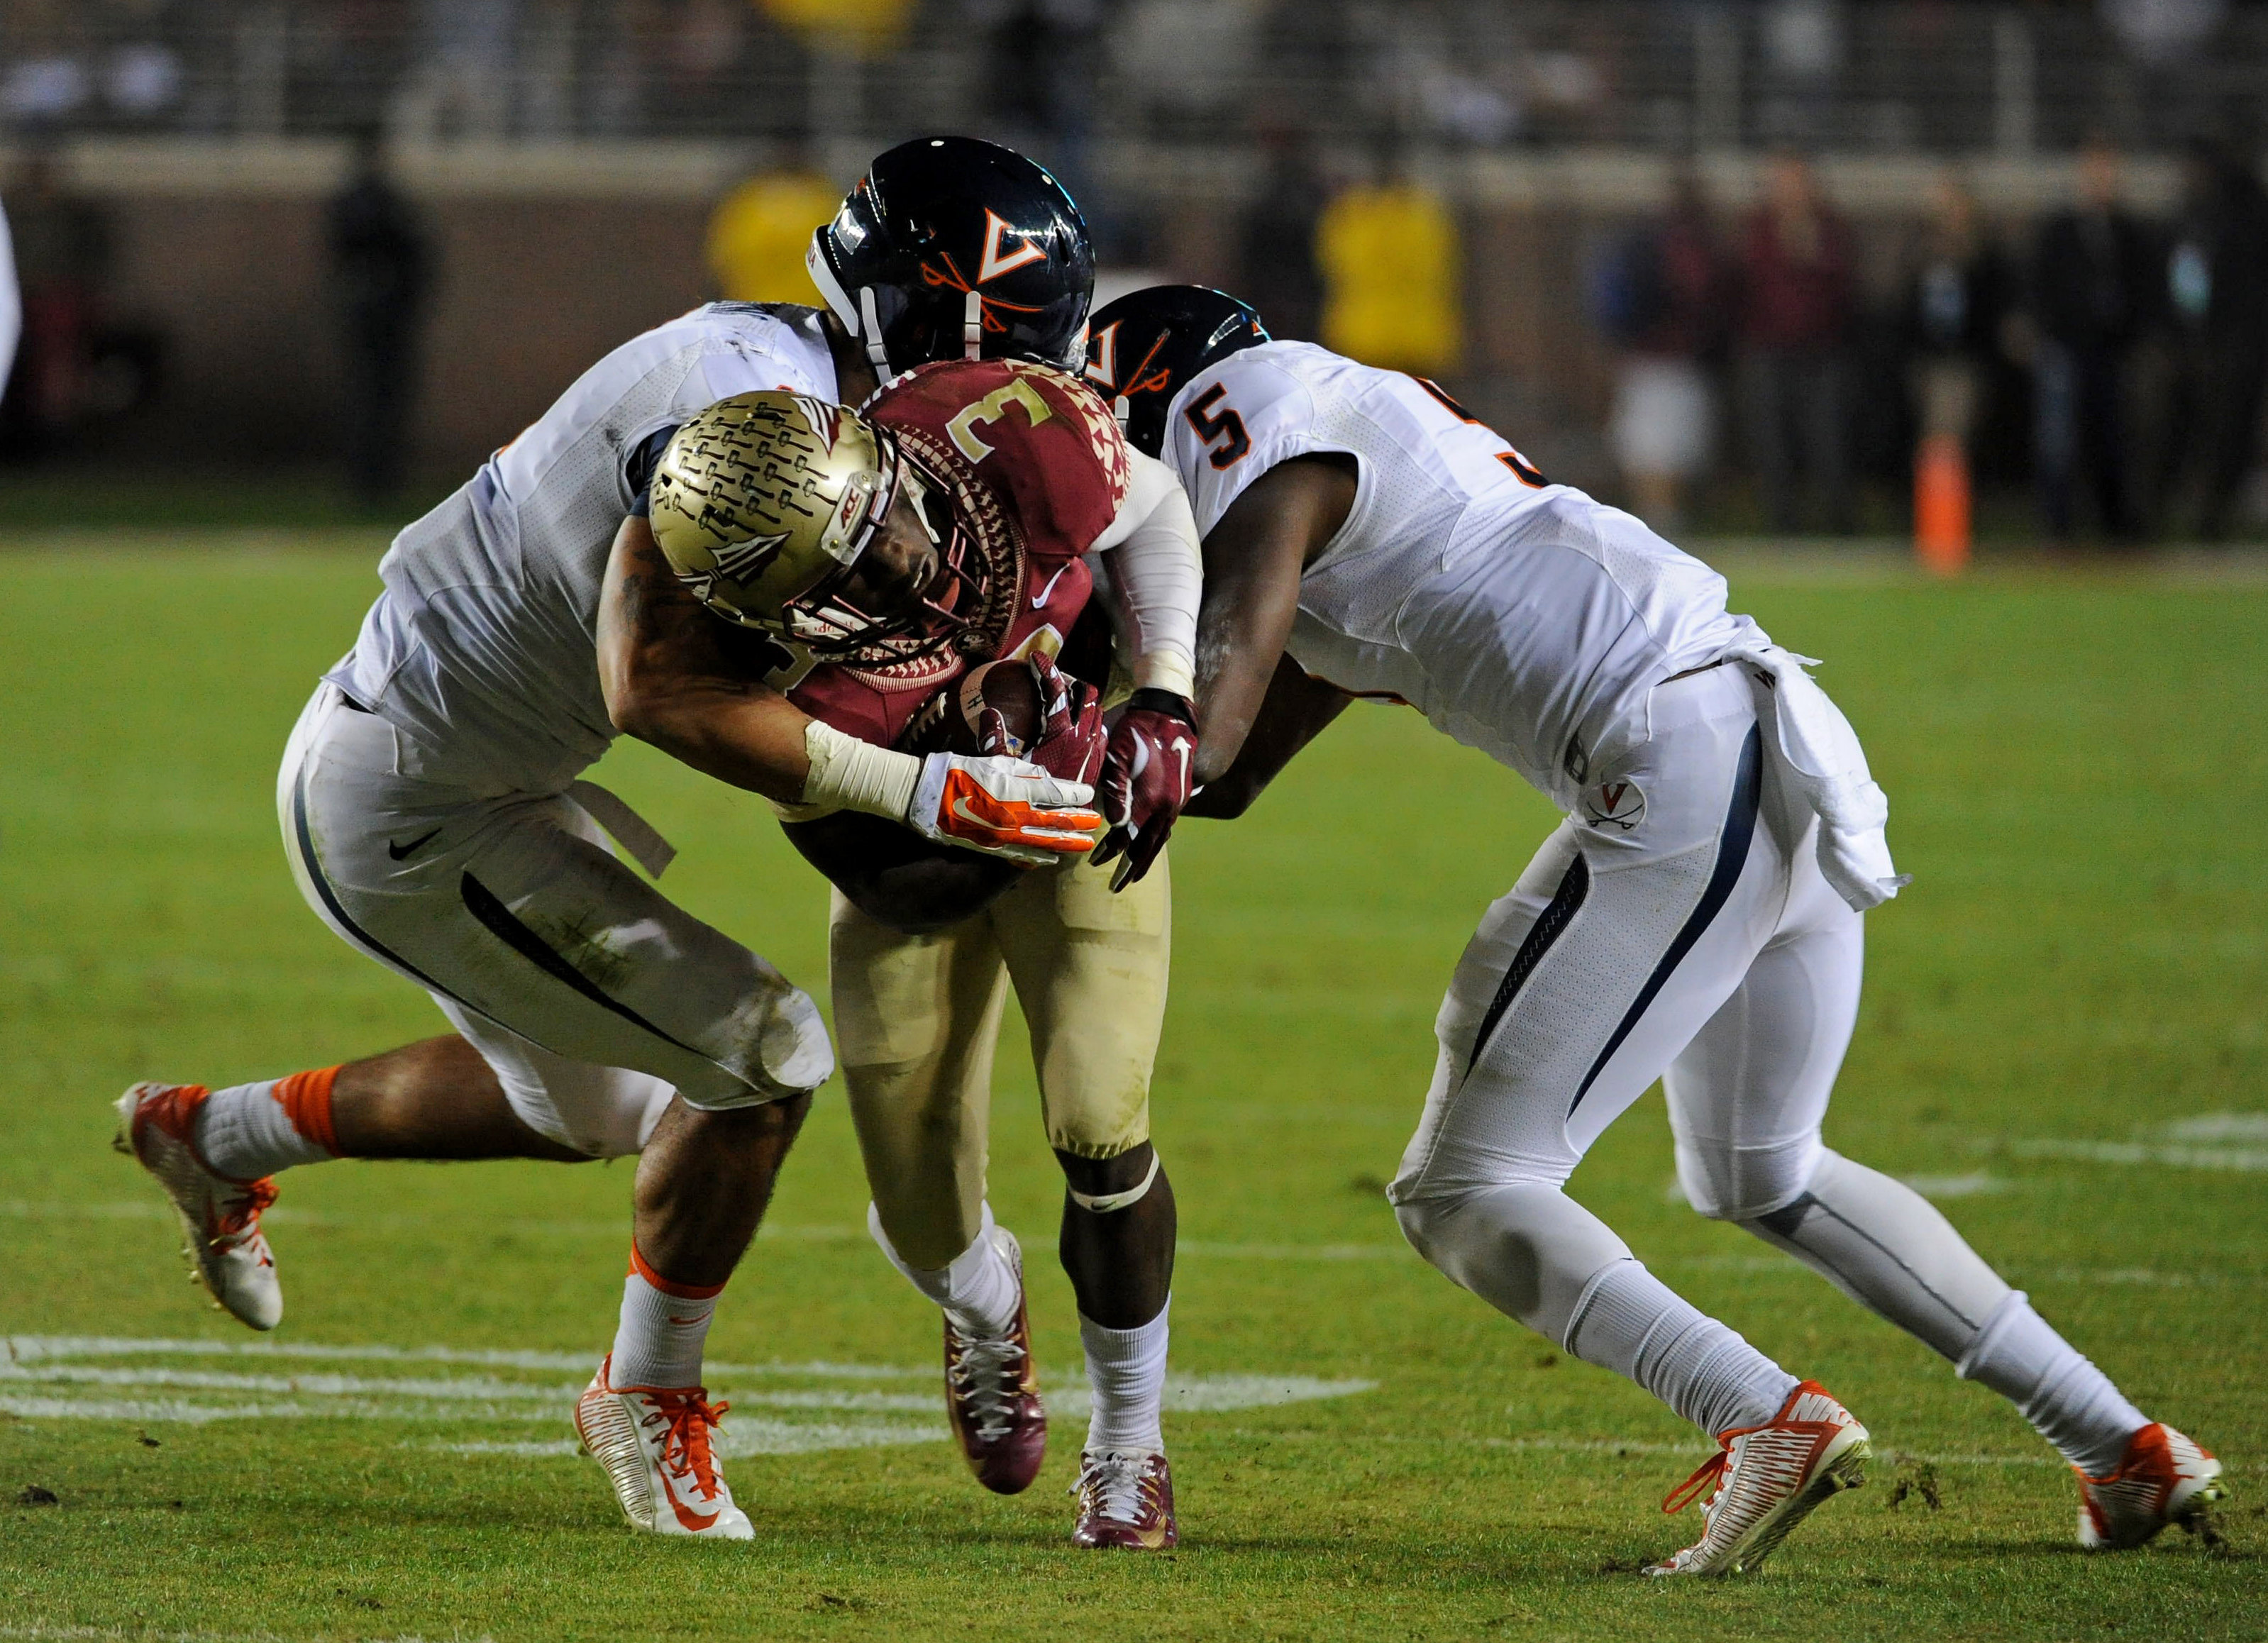 USP NCAA FOOTBALL: VIRGINIA AT FLORIDA STATE S FBC USA FL